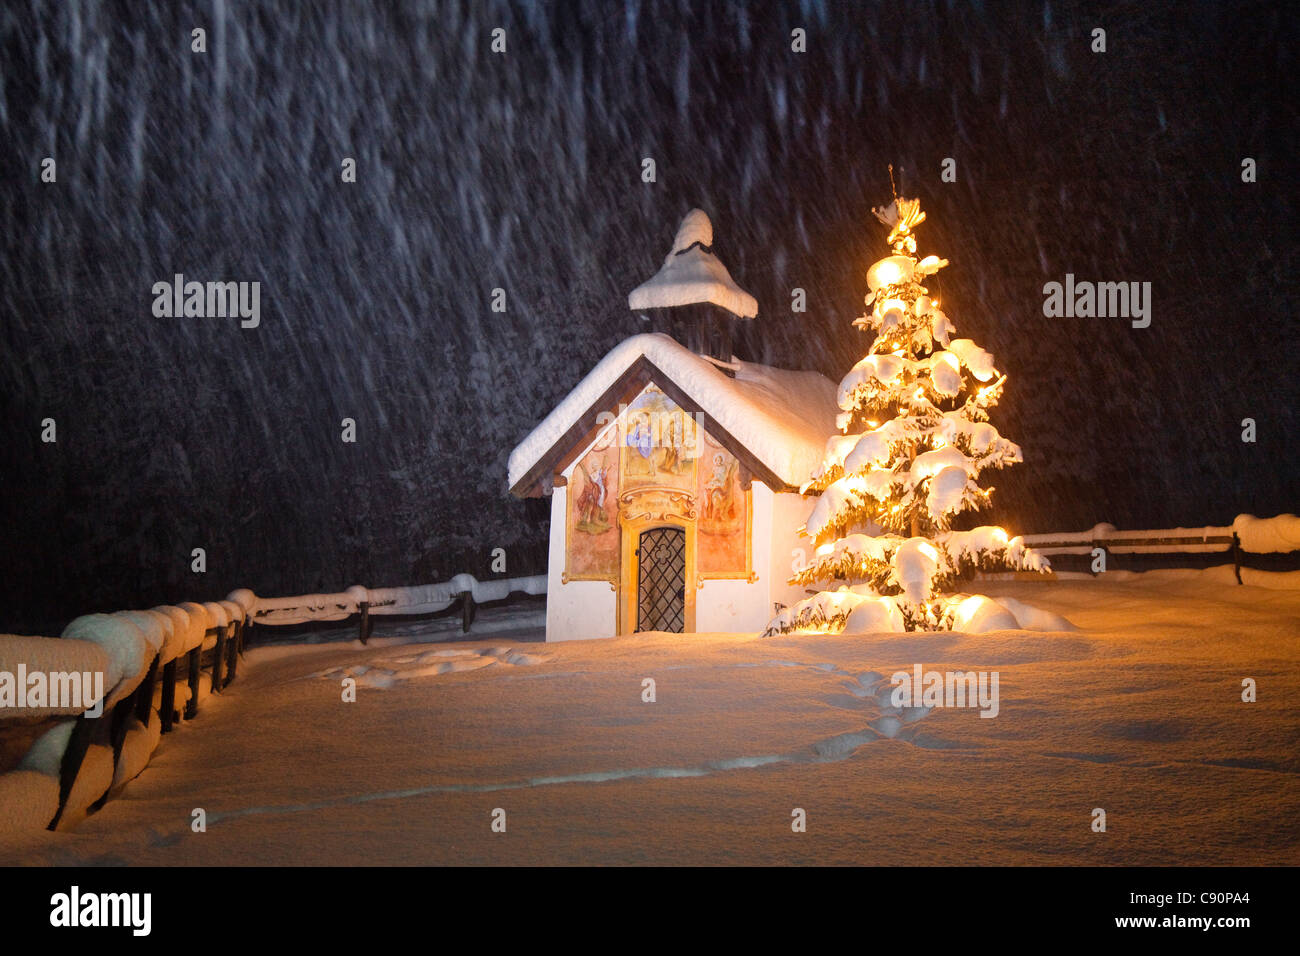 Chapelle avec arbre de Noël neige, Elmau, Upper Bavaria, Germany, Europe Photo Stock